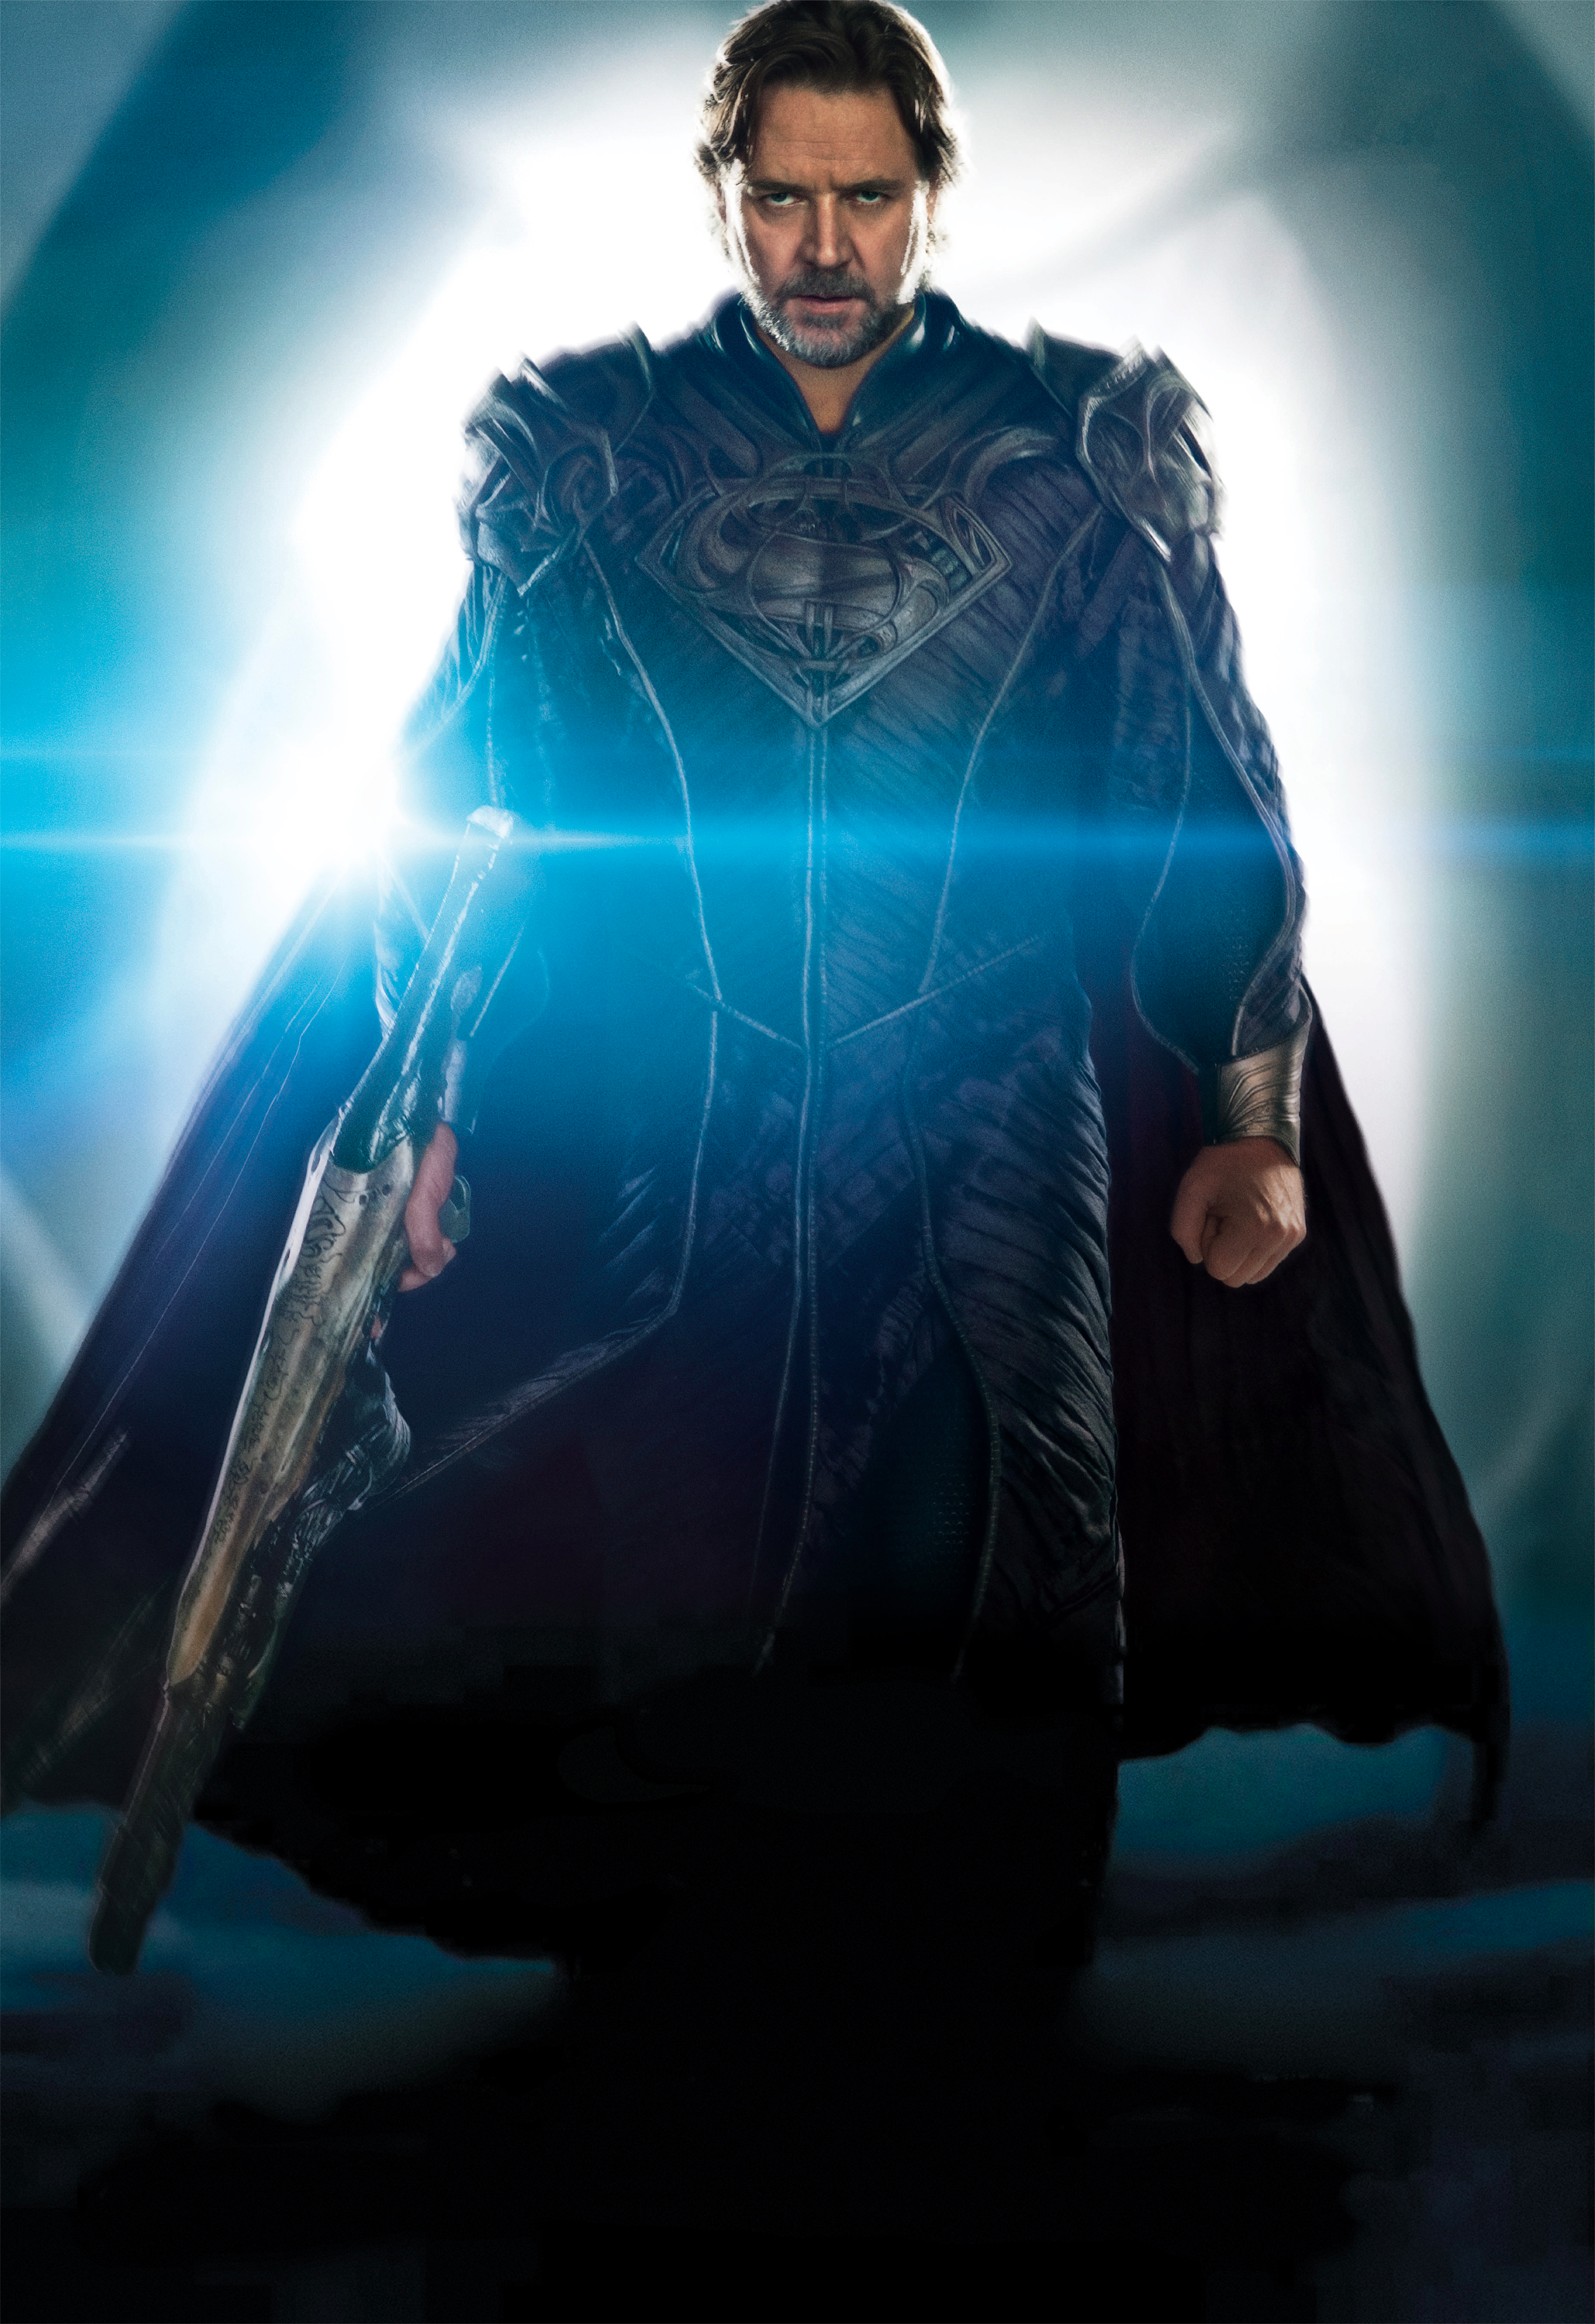 Inferno Lord Red/PG Proposal: Jor-El (DC Extended Universe)